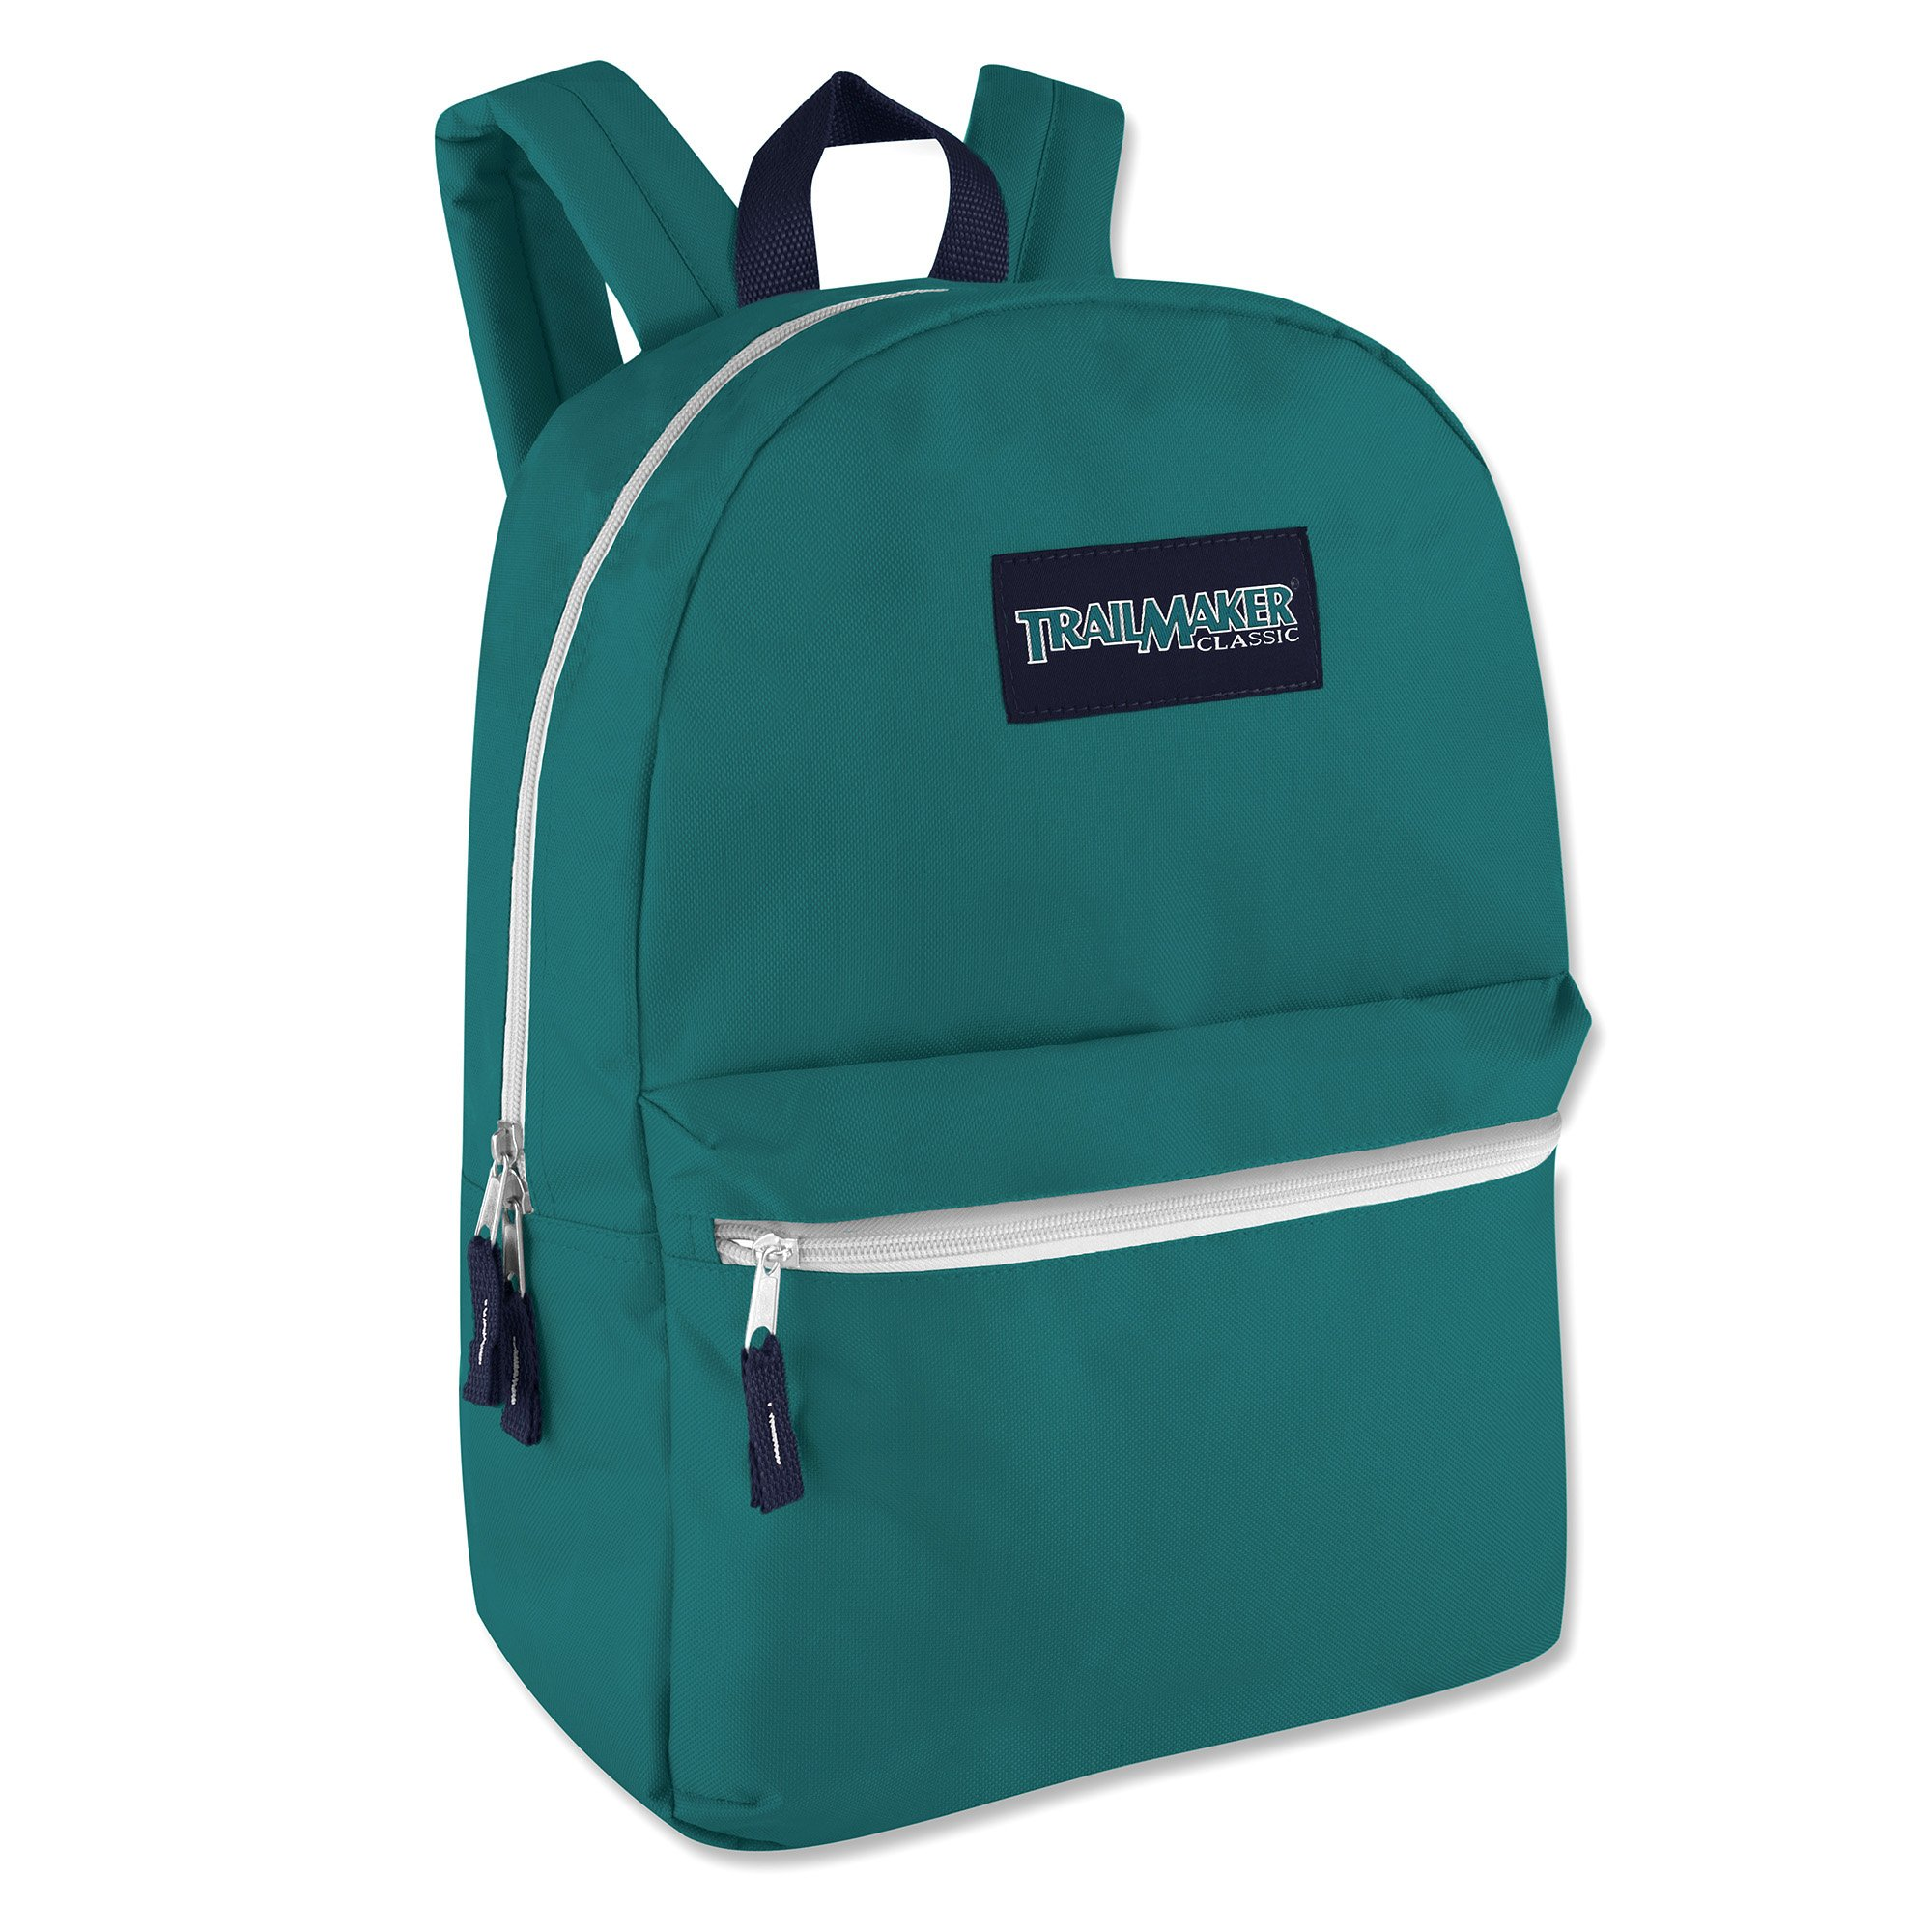 Trailmaker Classic Super Popular Best Seller Sturdy 17 inch Padded Backpack (Blue) by Trail maker (Image #2)